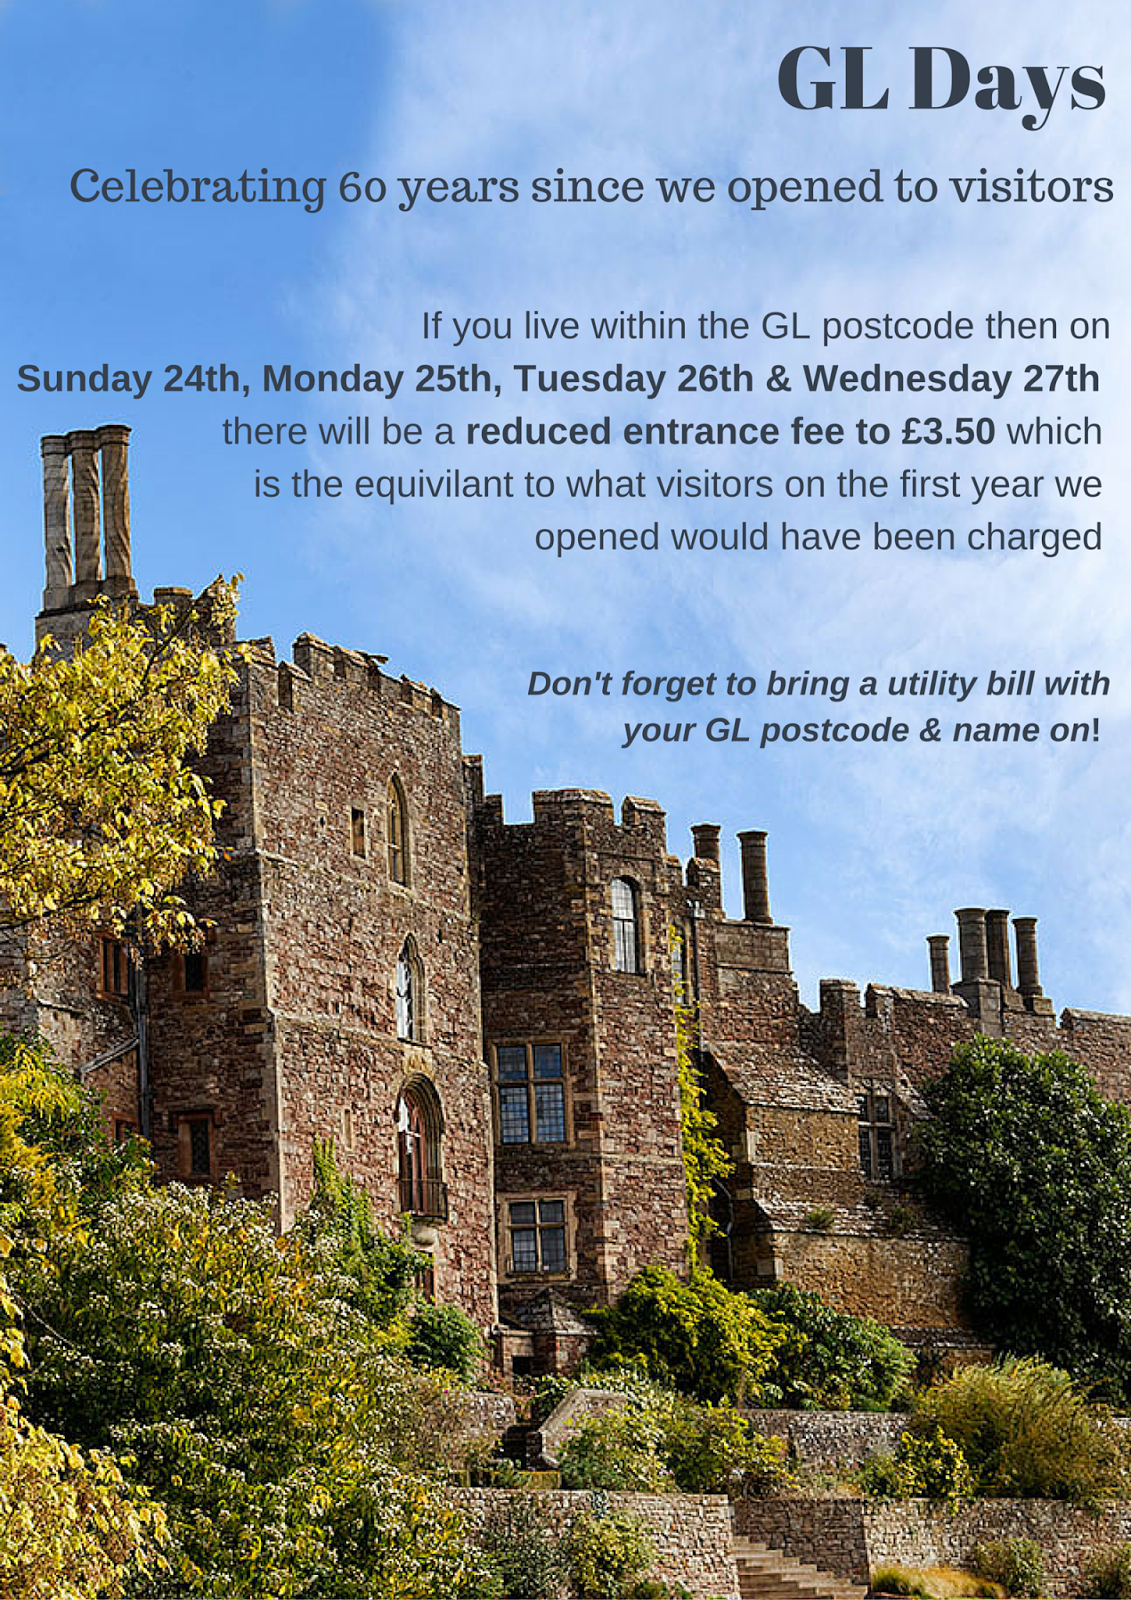 On Easter Sunday in 1956 Mr Berkeley opened the Berkeley Castle doors to the paying public for the first time in history. To celebrate the 60th anniversary ... & Berkeley Castle News: April 2016